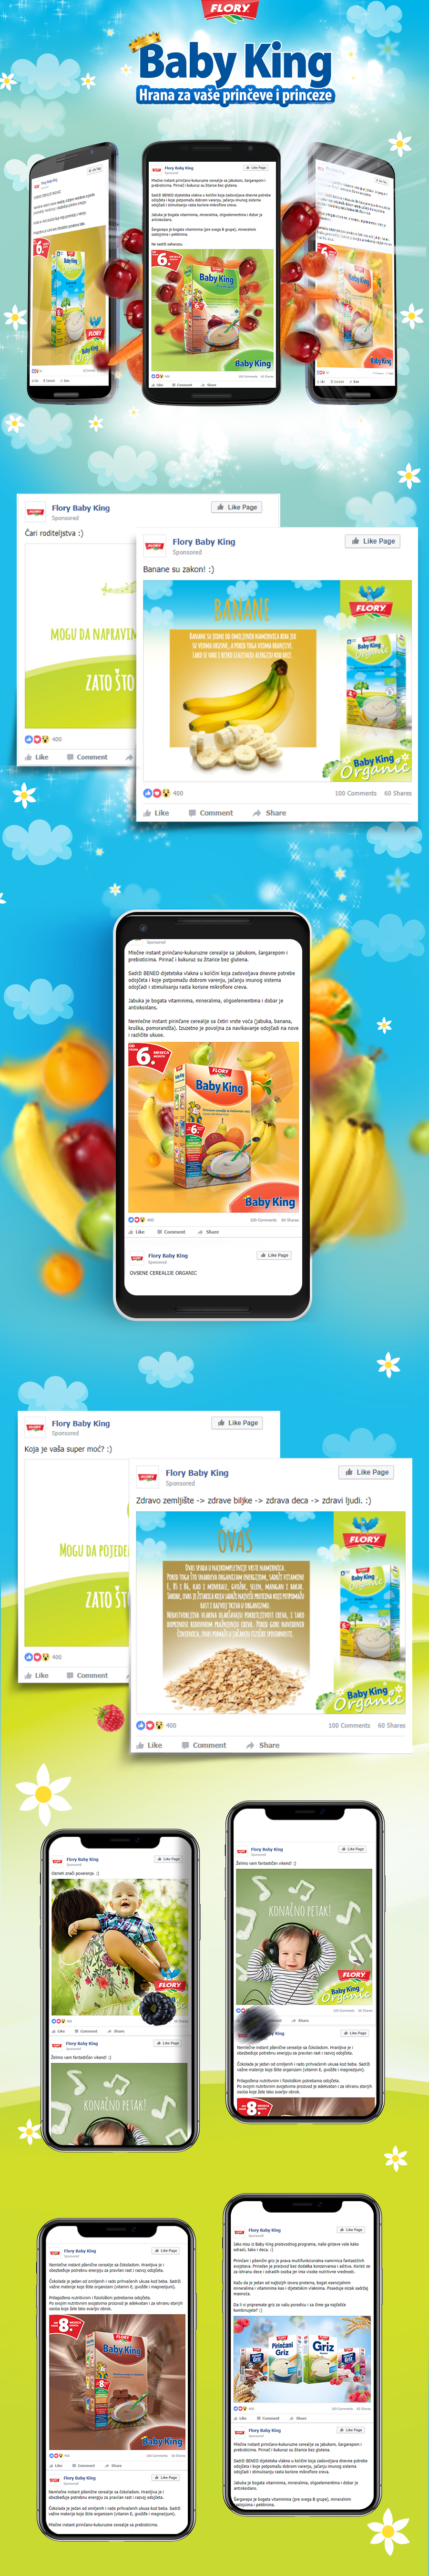 Flory-baby-king--fb-mock-up-FINAL